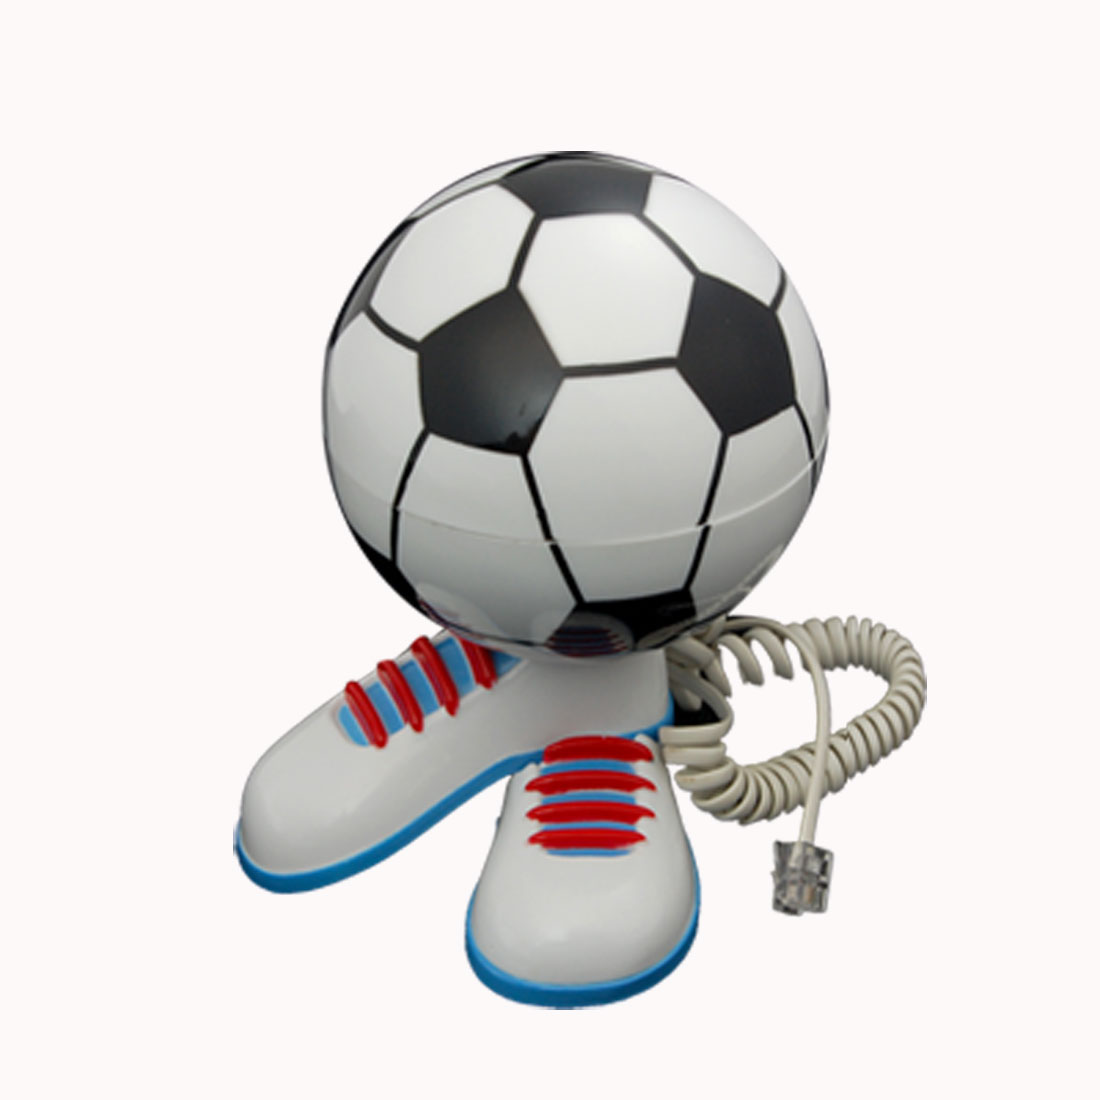 Plastic Wired RJ11 Cord Football Desk Telephone Phone